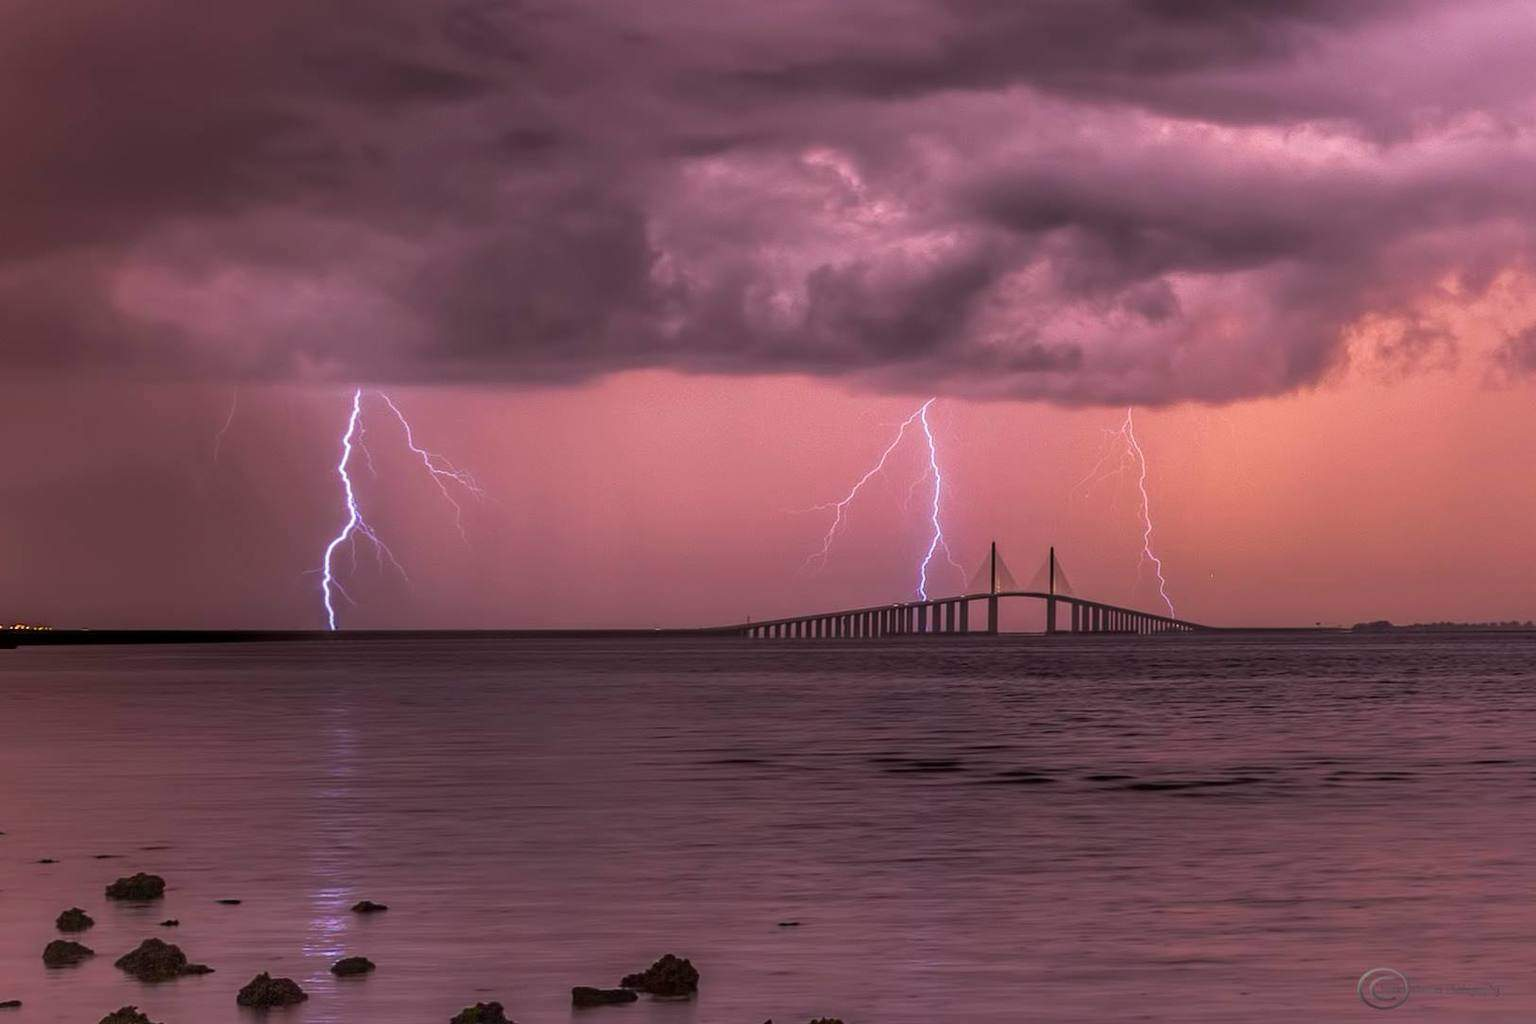 The Sunshine Skyway Bridge in St Petersburg, Fl getting pounded by lightning around sunset this evening